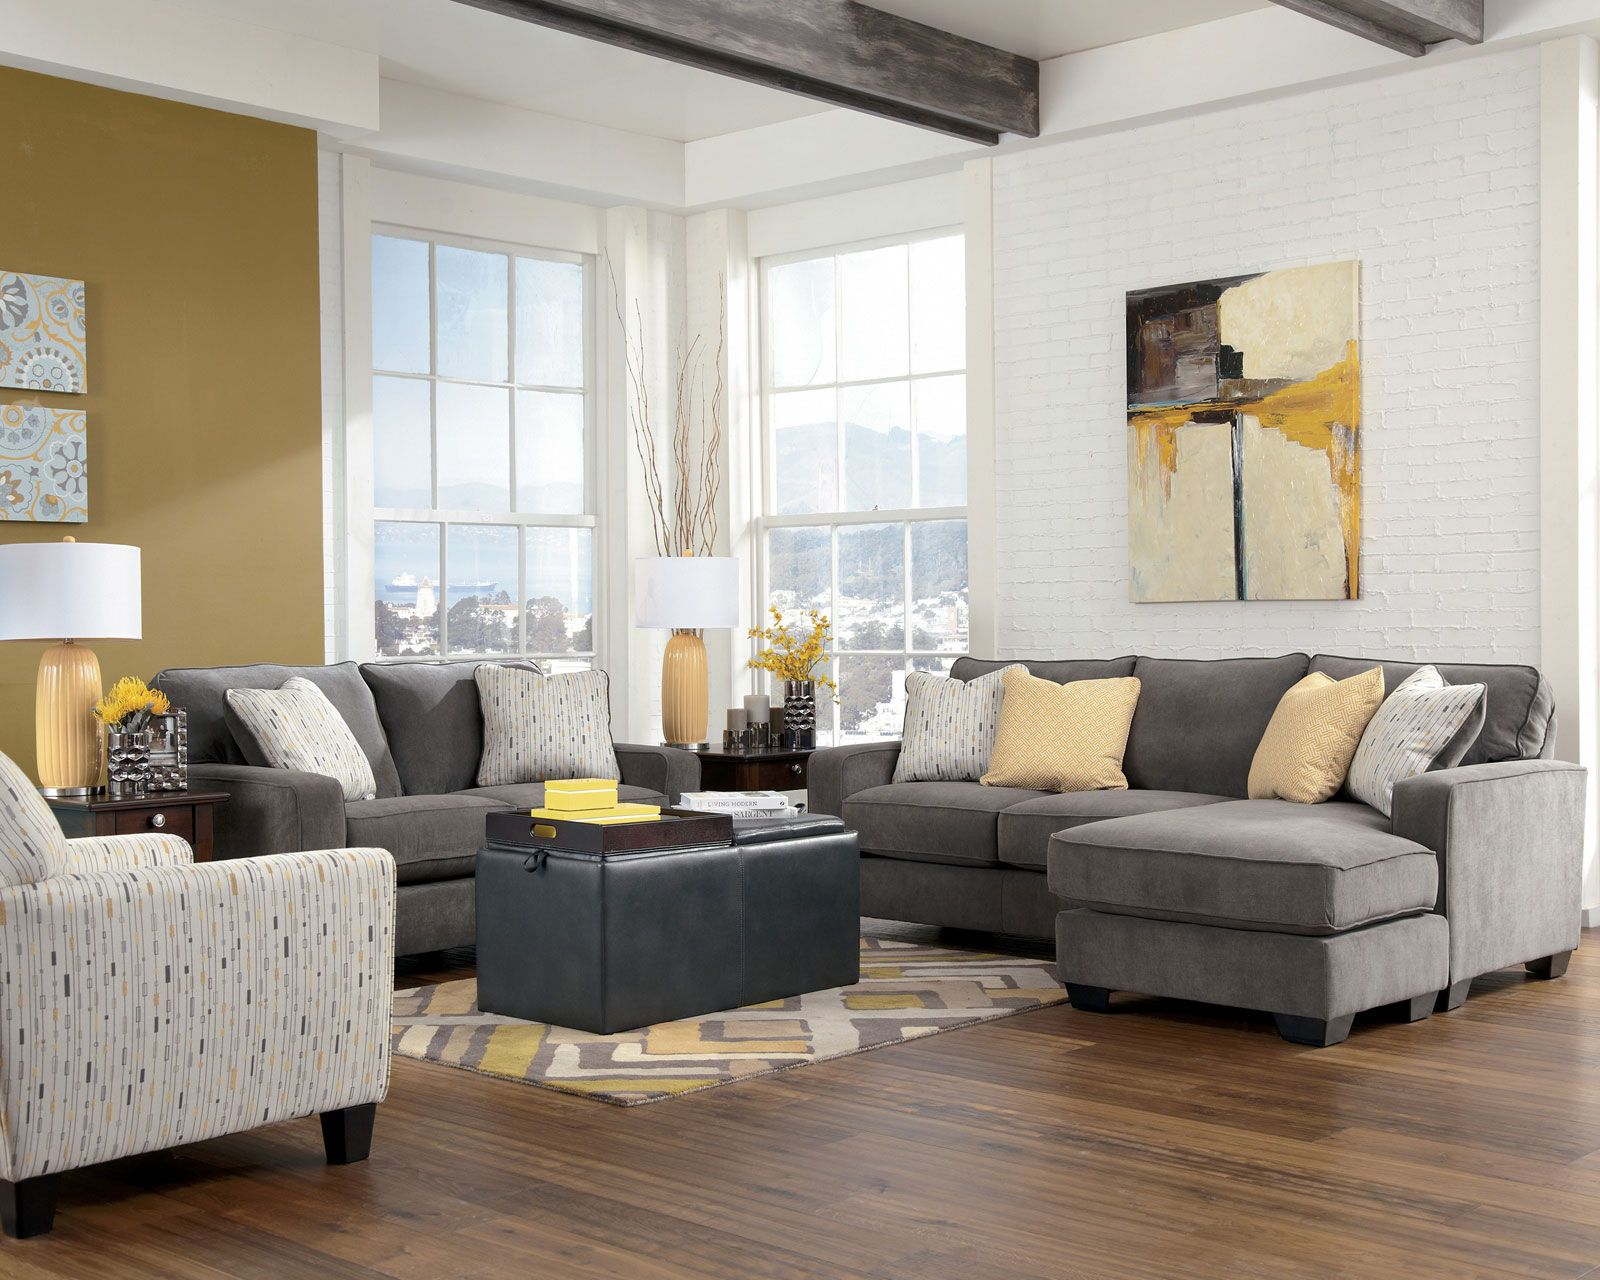 Daystar Seafoam Sofa Suite with matching Accent Chair and Ottoman